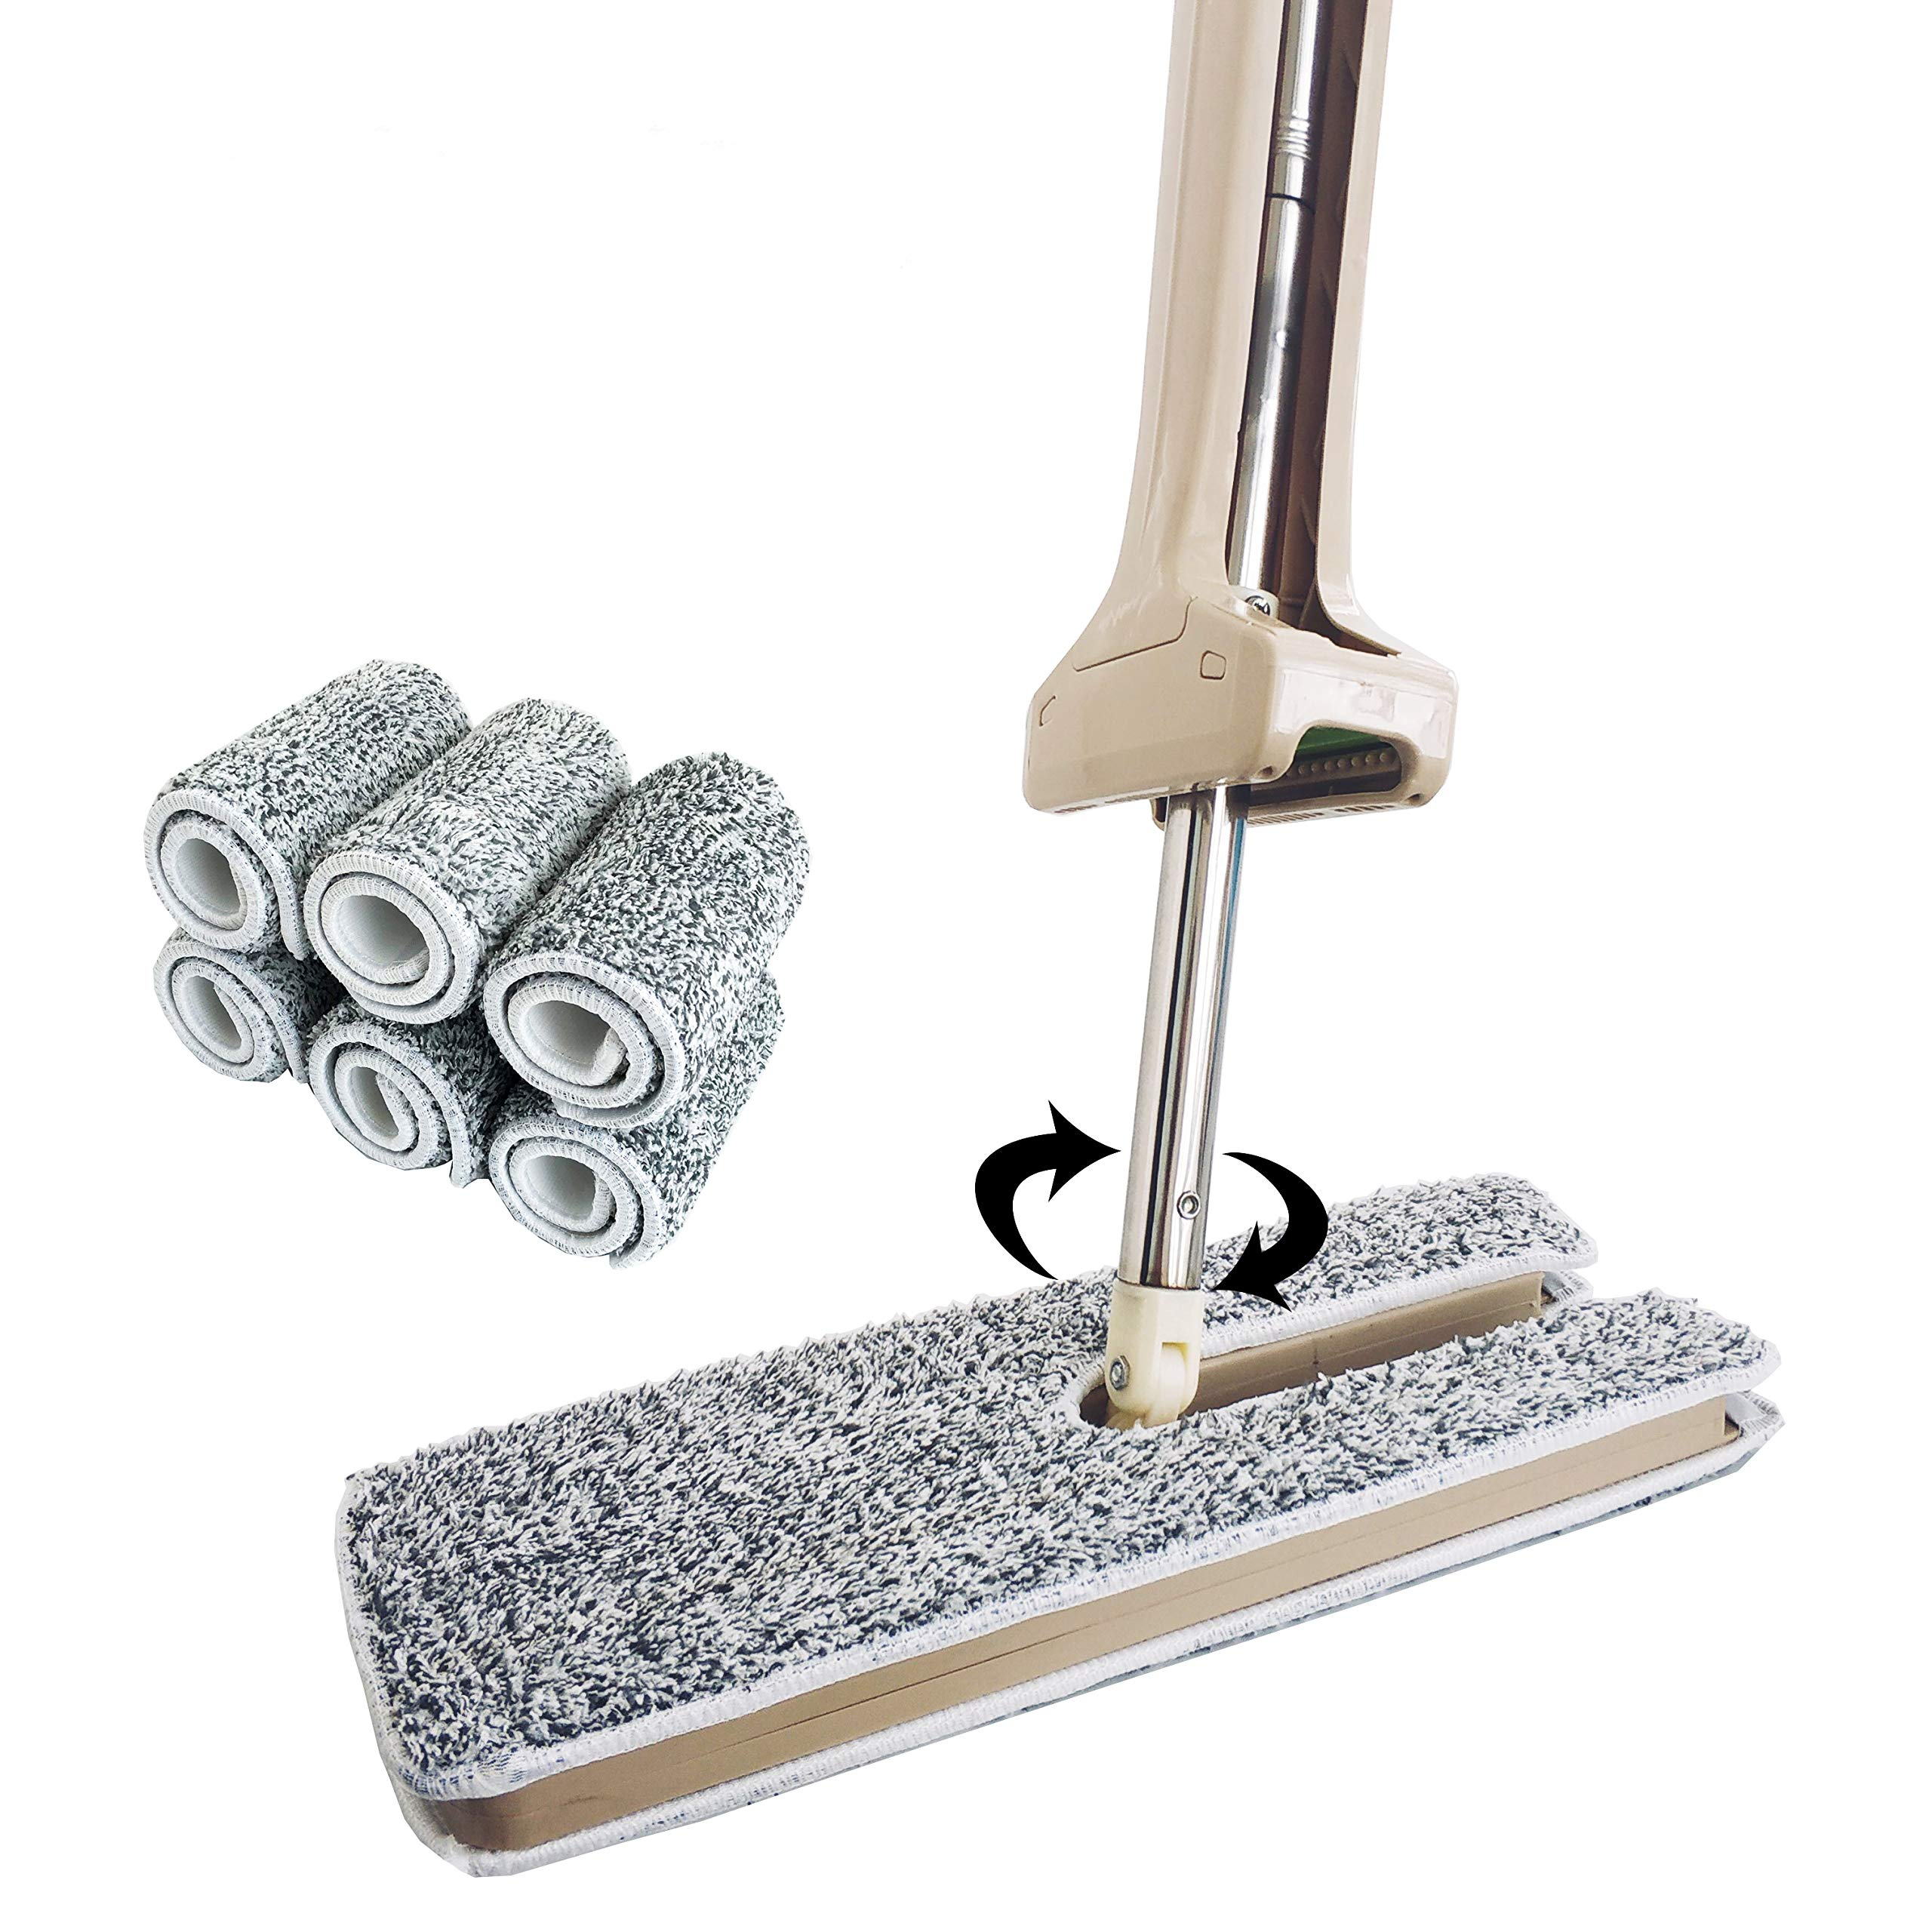 Kessica Dual-Sided Microfiber Flat Lazy Mop 360 Degrees Rotation and Self-Wringing Wet & Dry Household Cleaning Mop. (Upgraded 4 Microfiber Pads)